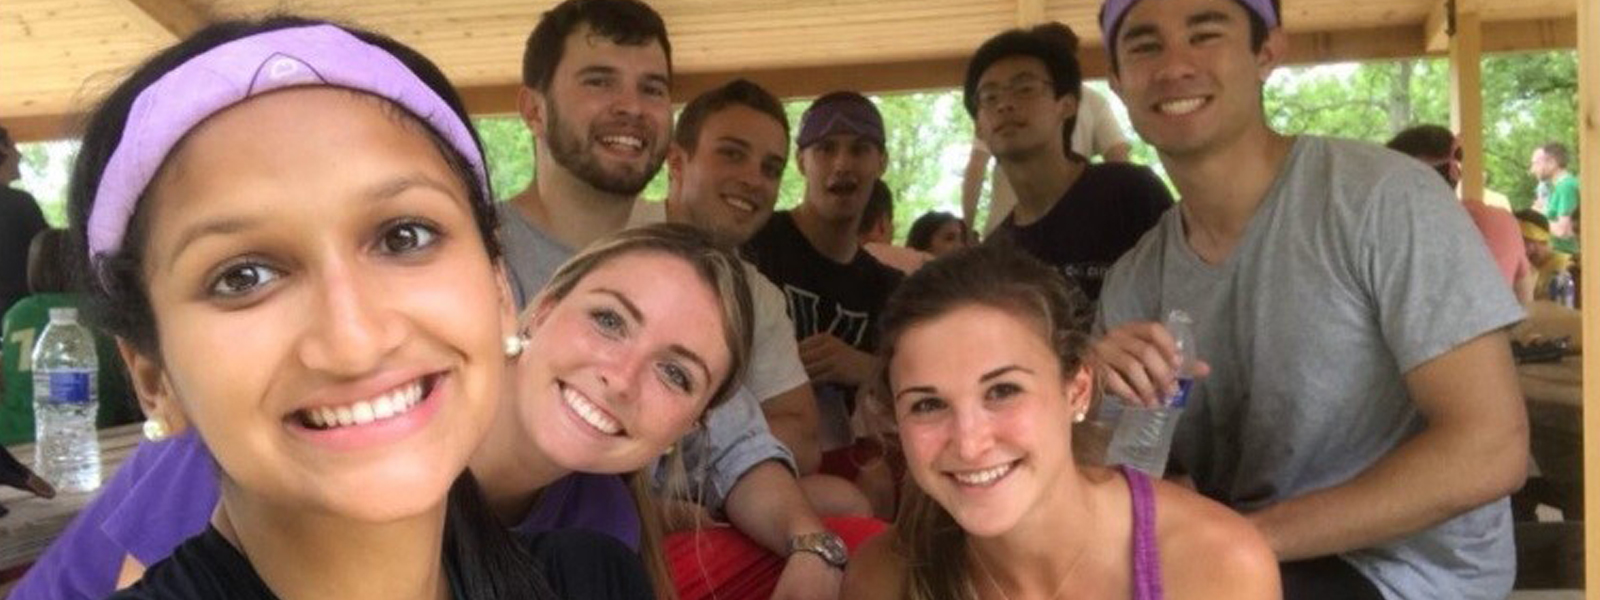 The Vanguard Experience (As Told by Vanguard Interns) - Vanguard ...